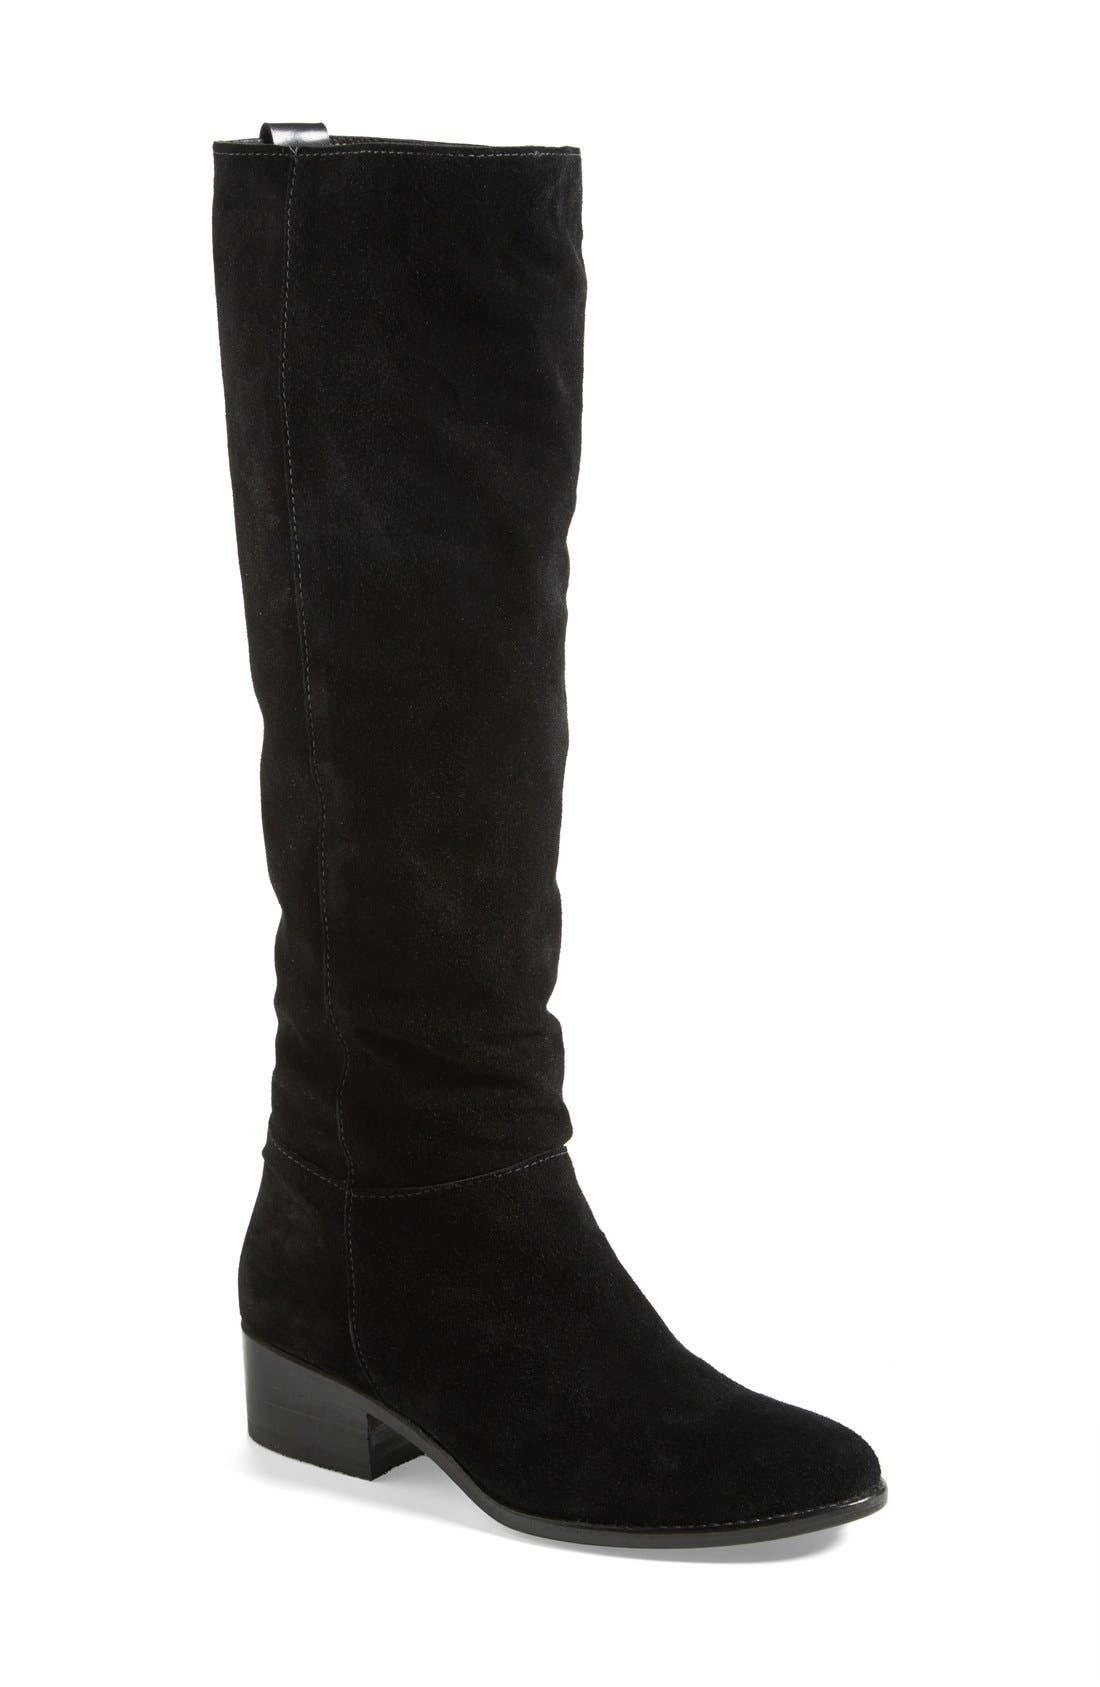 Main Image - Steve Madden 'Pondrosa' Suede Boot (Women)